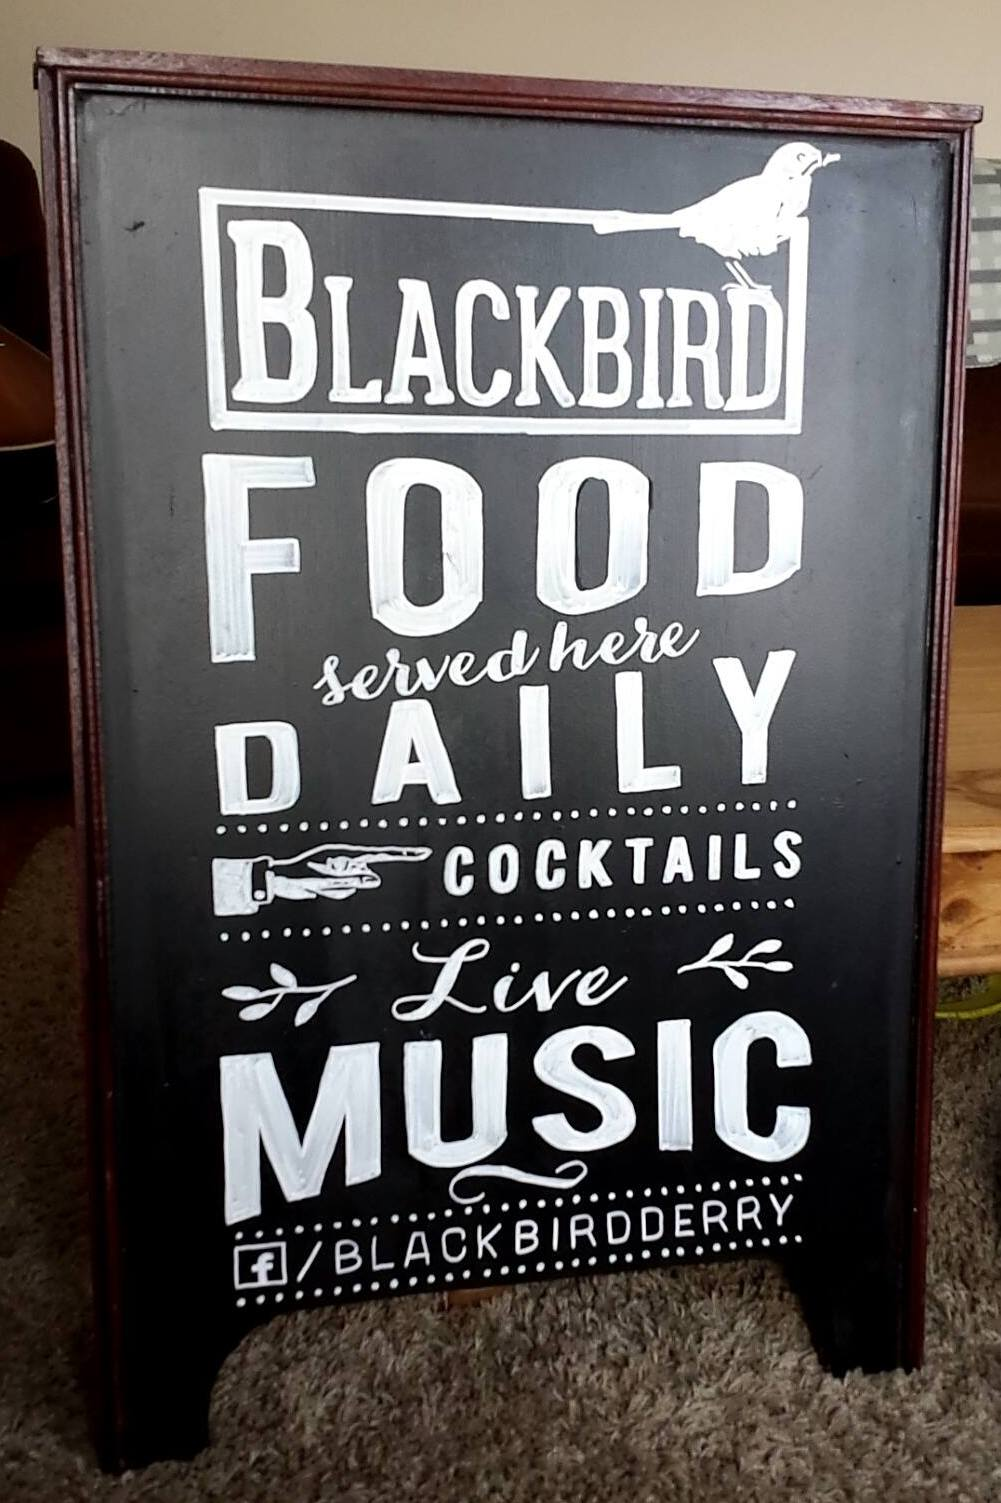 Blackbird, Derry